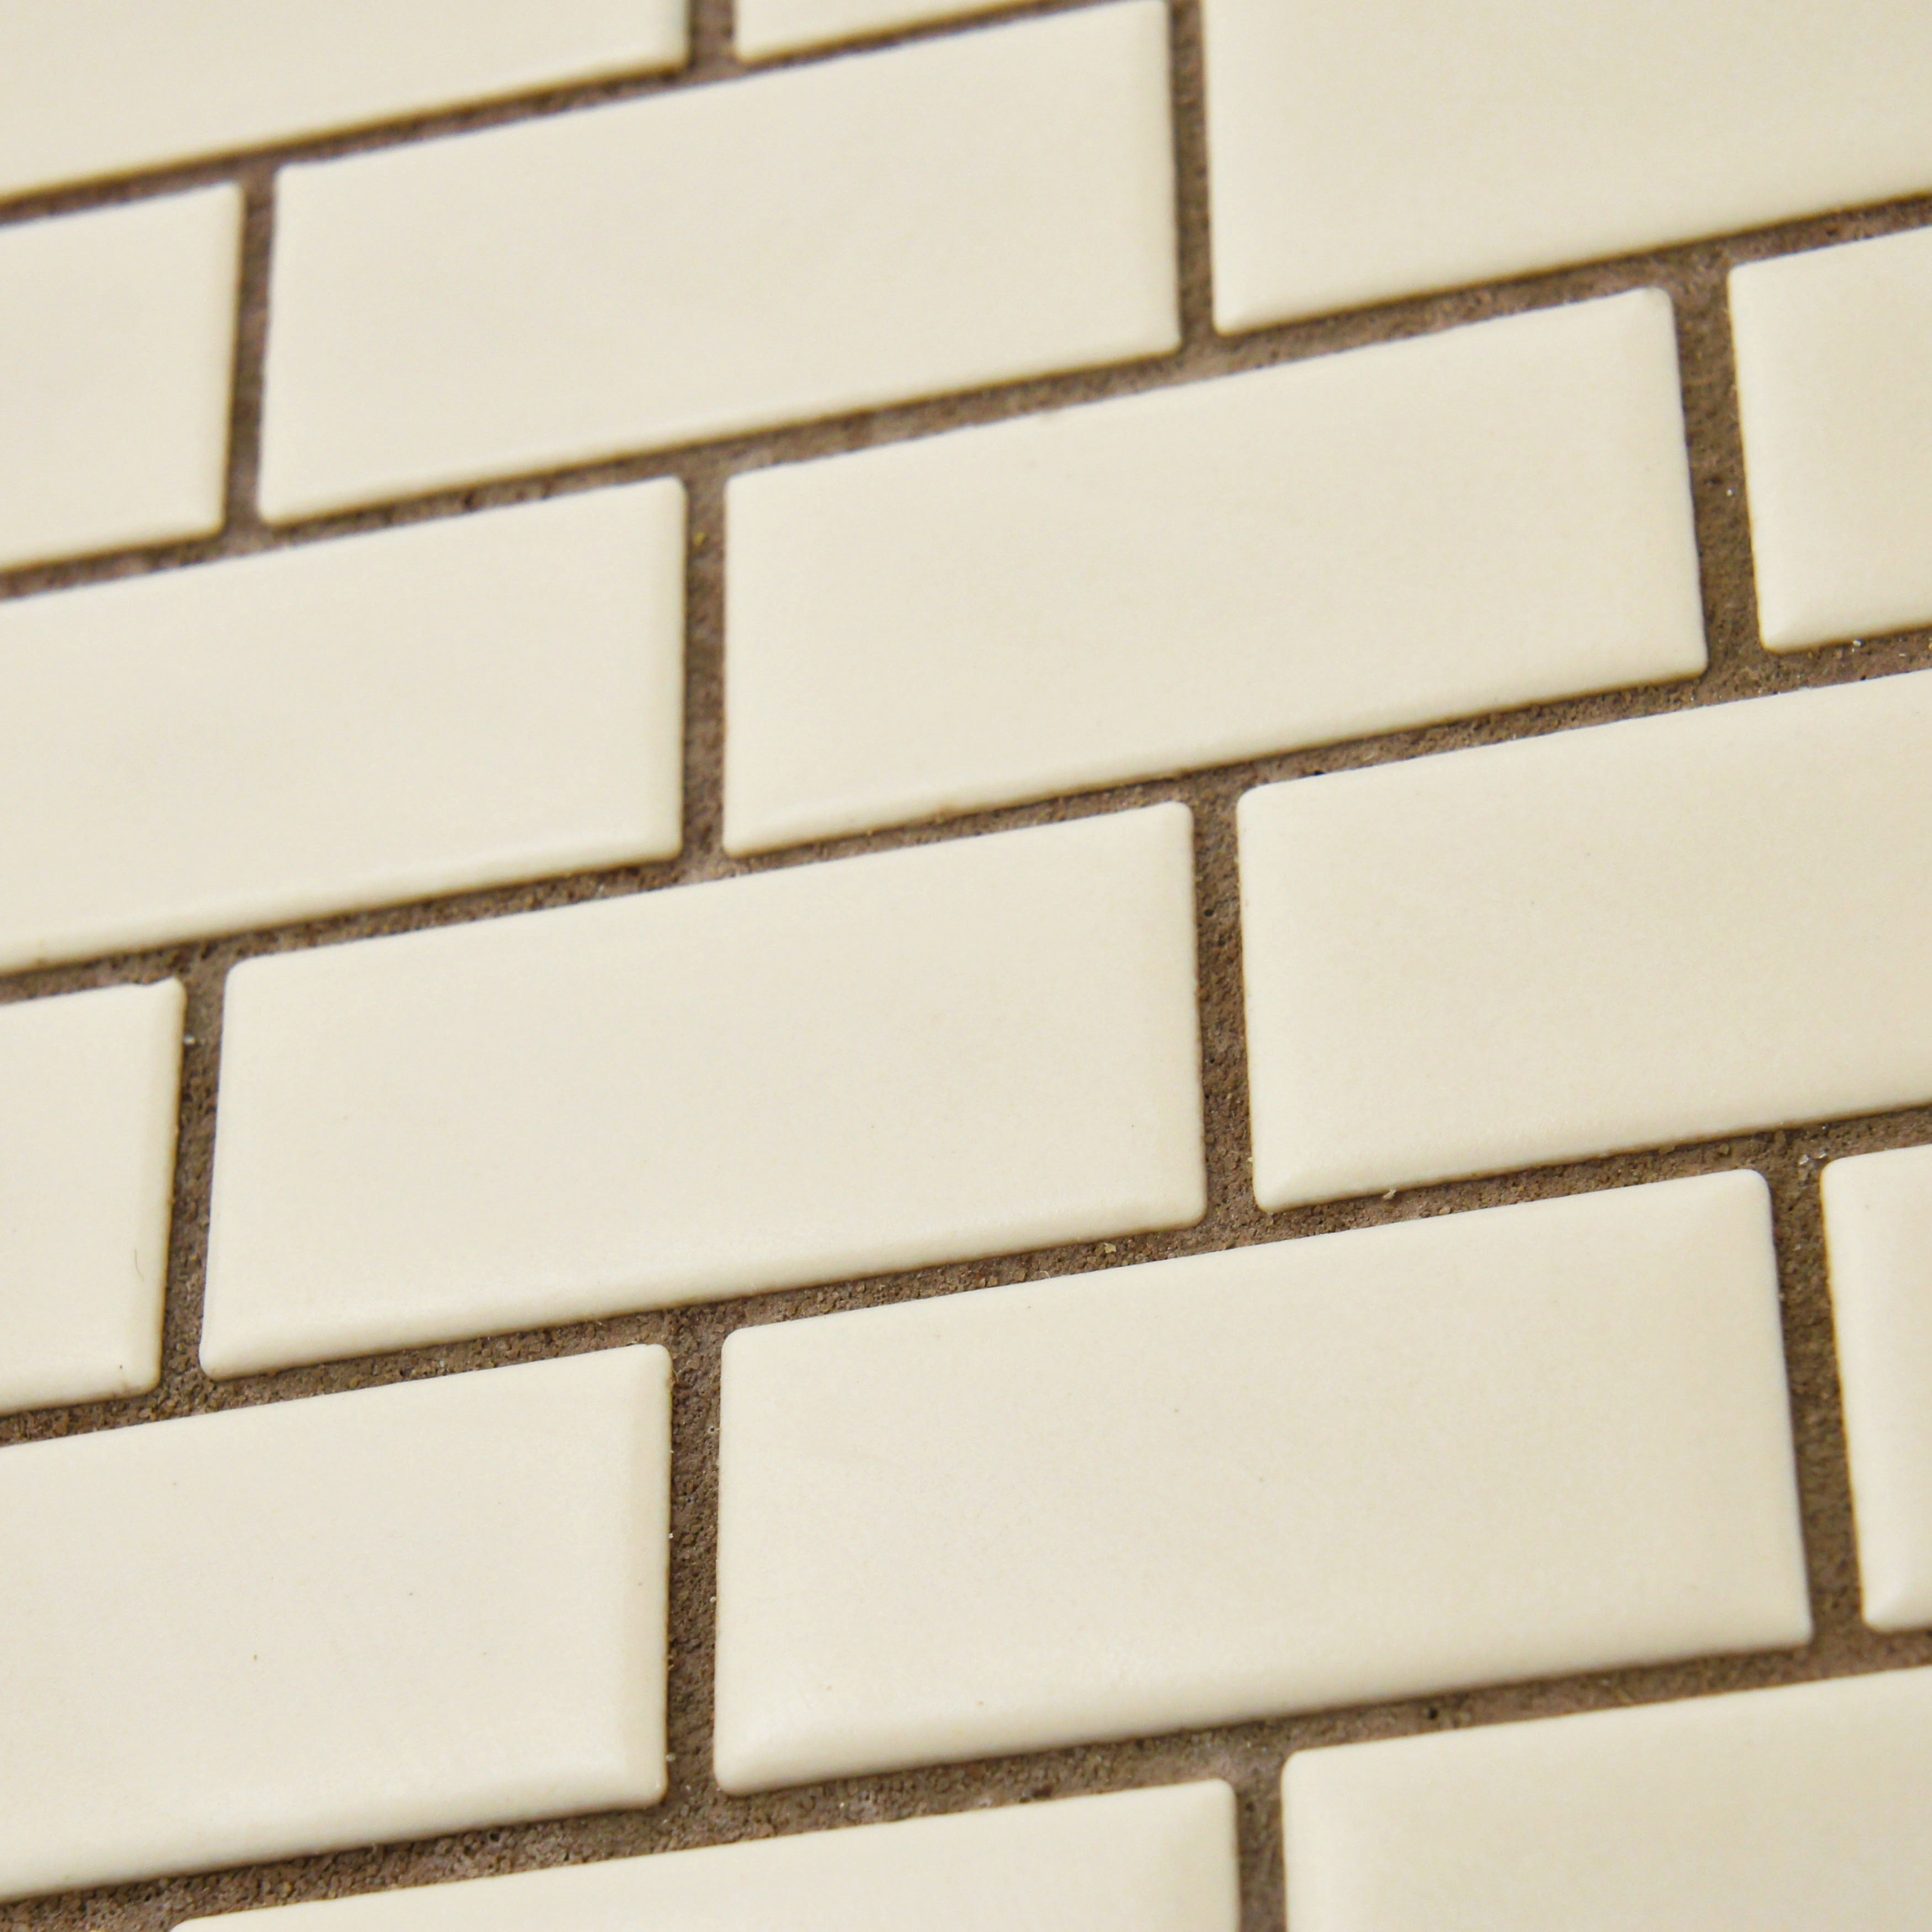 Somertile victorian subway 1x2 in matte biscuit porcelain mosaic somertile victorian subway 1x2 in matte biscuit porcelain mosaic tile pack of 10 free shipping today overstock 13977987 dailygadgetfo Choice Image